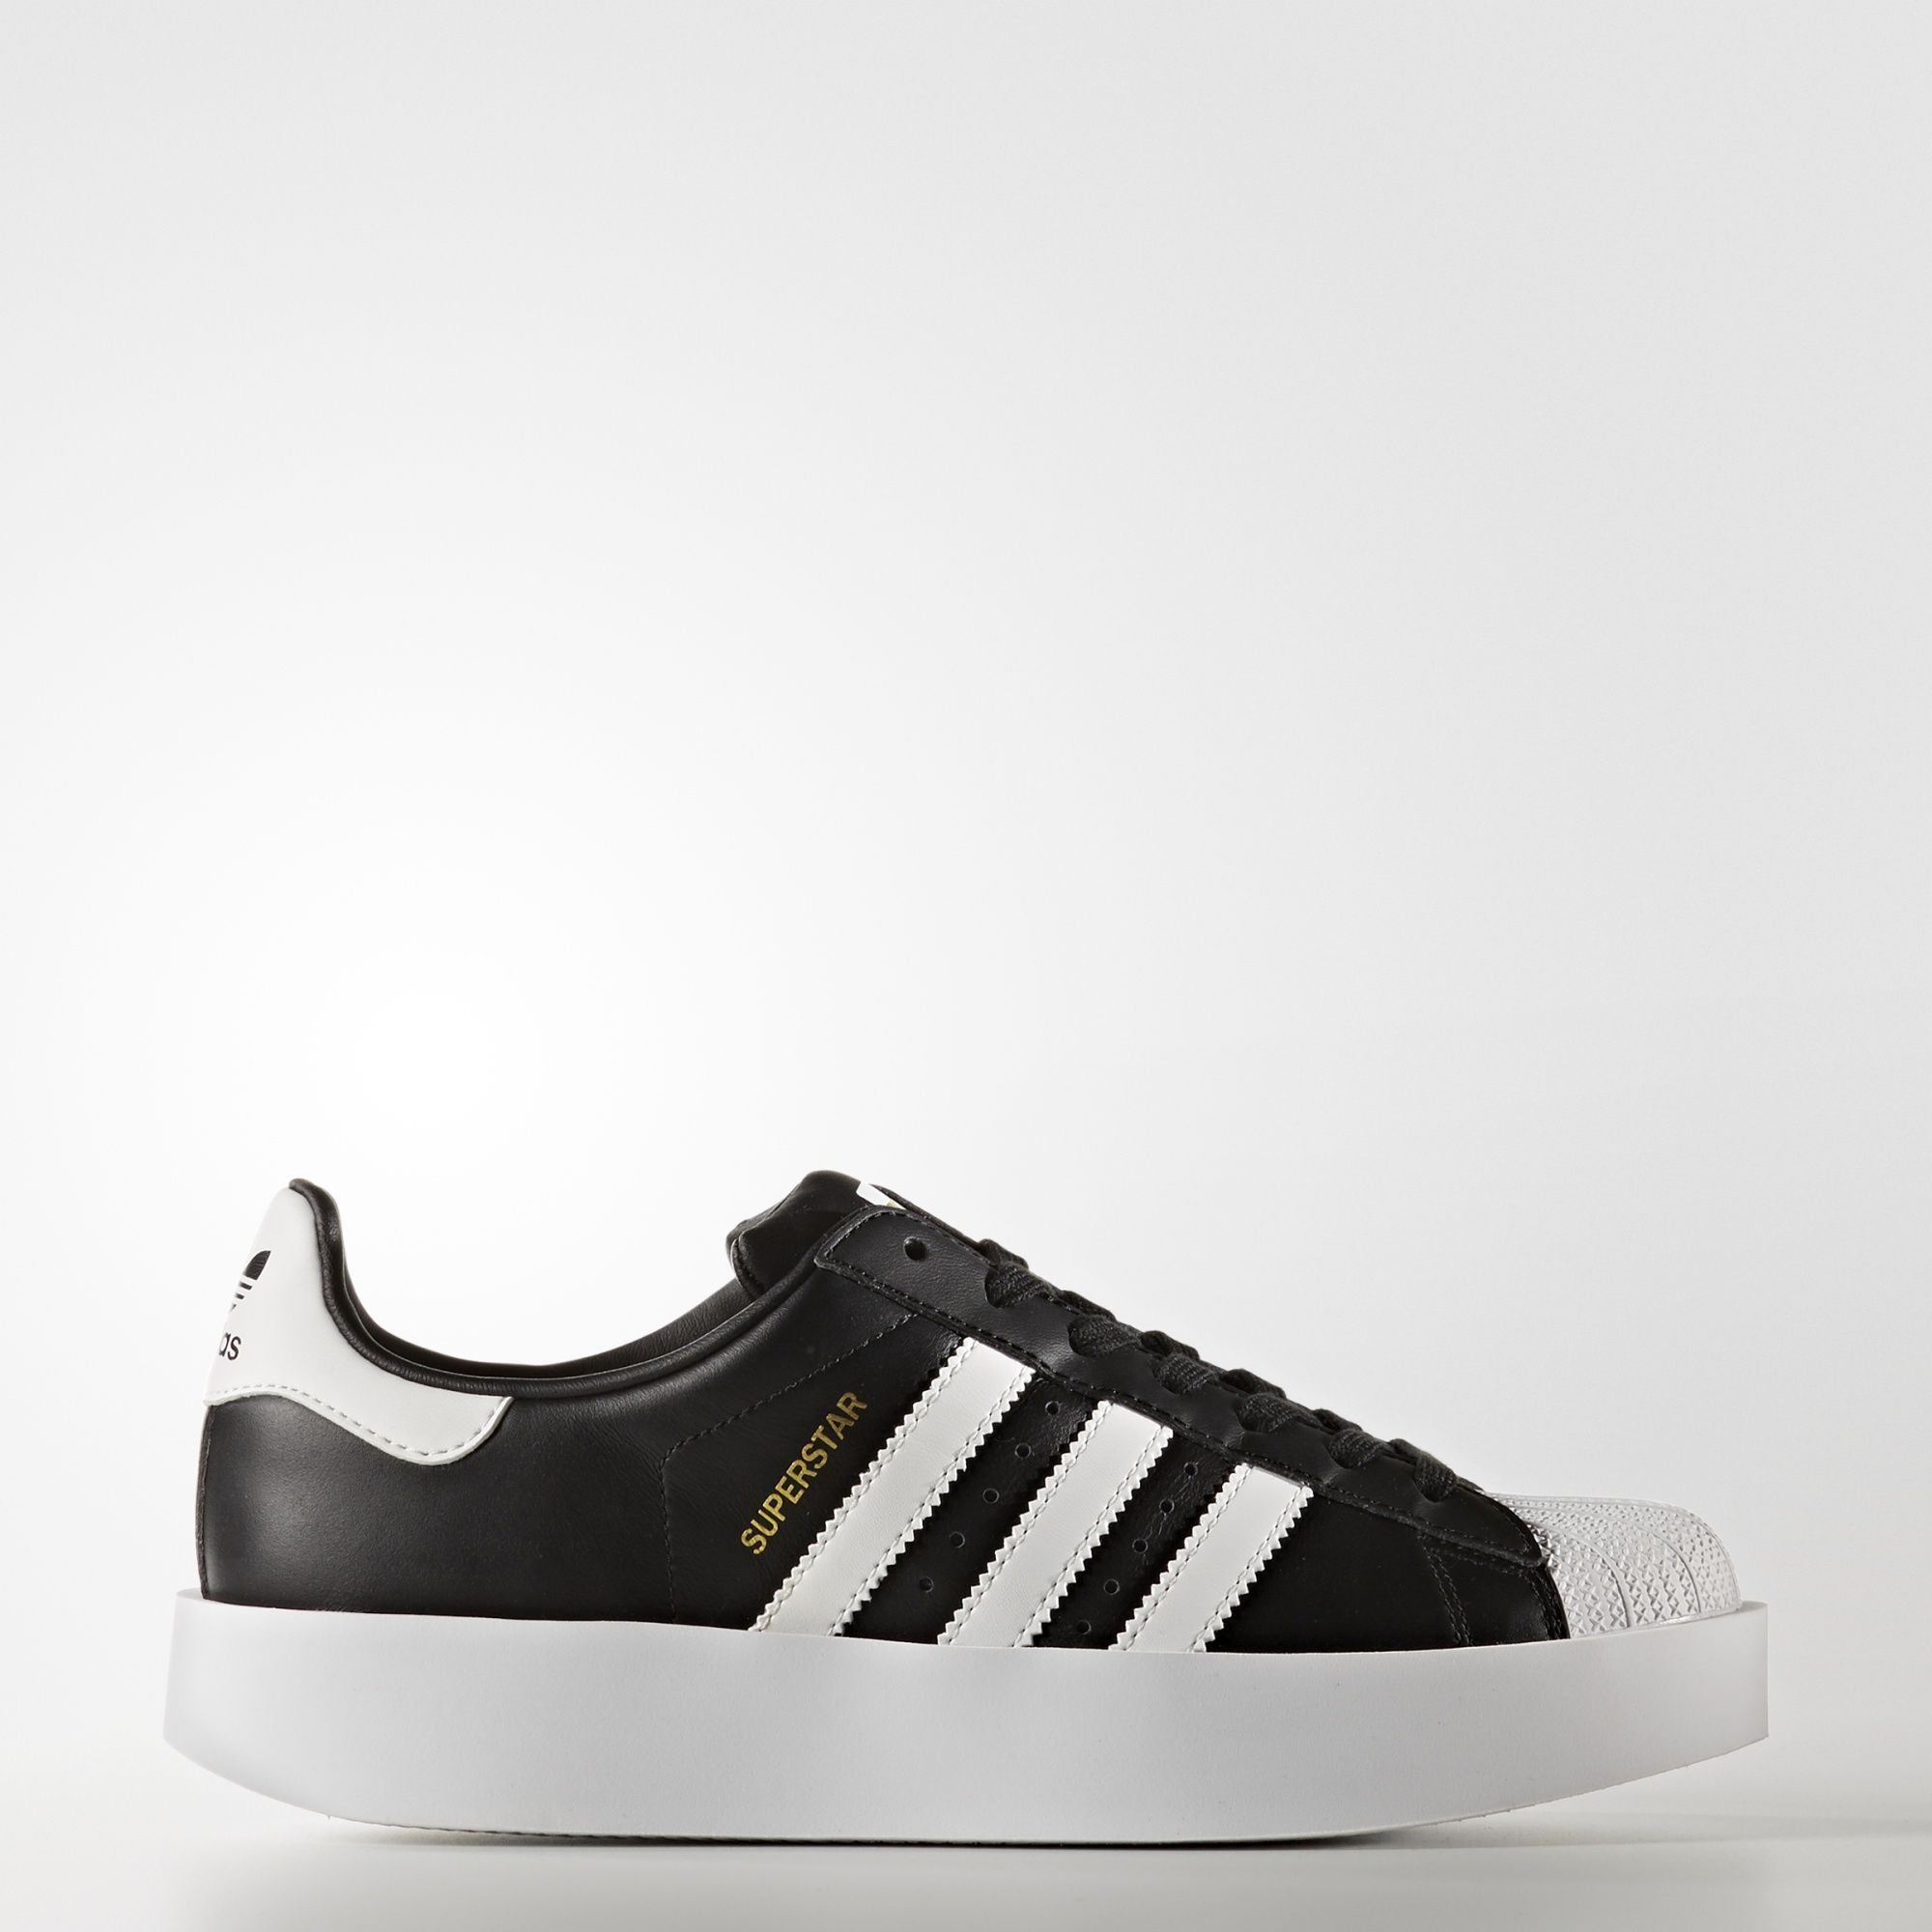 adidas - Superstar Bold Platform Shoes | Adidas superstar ...